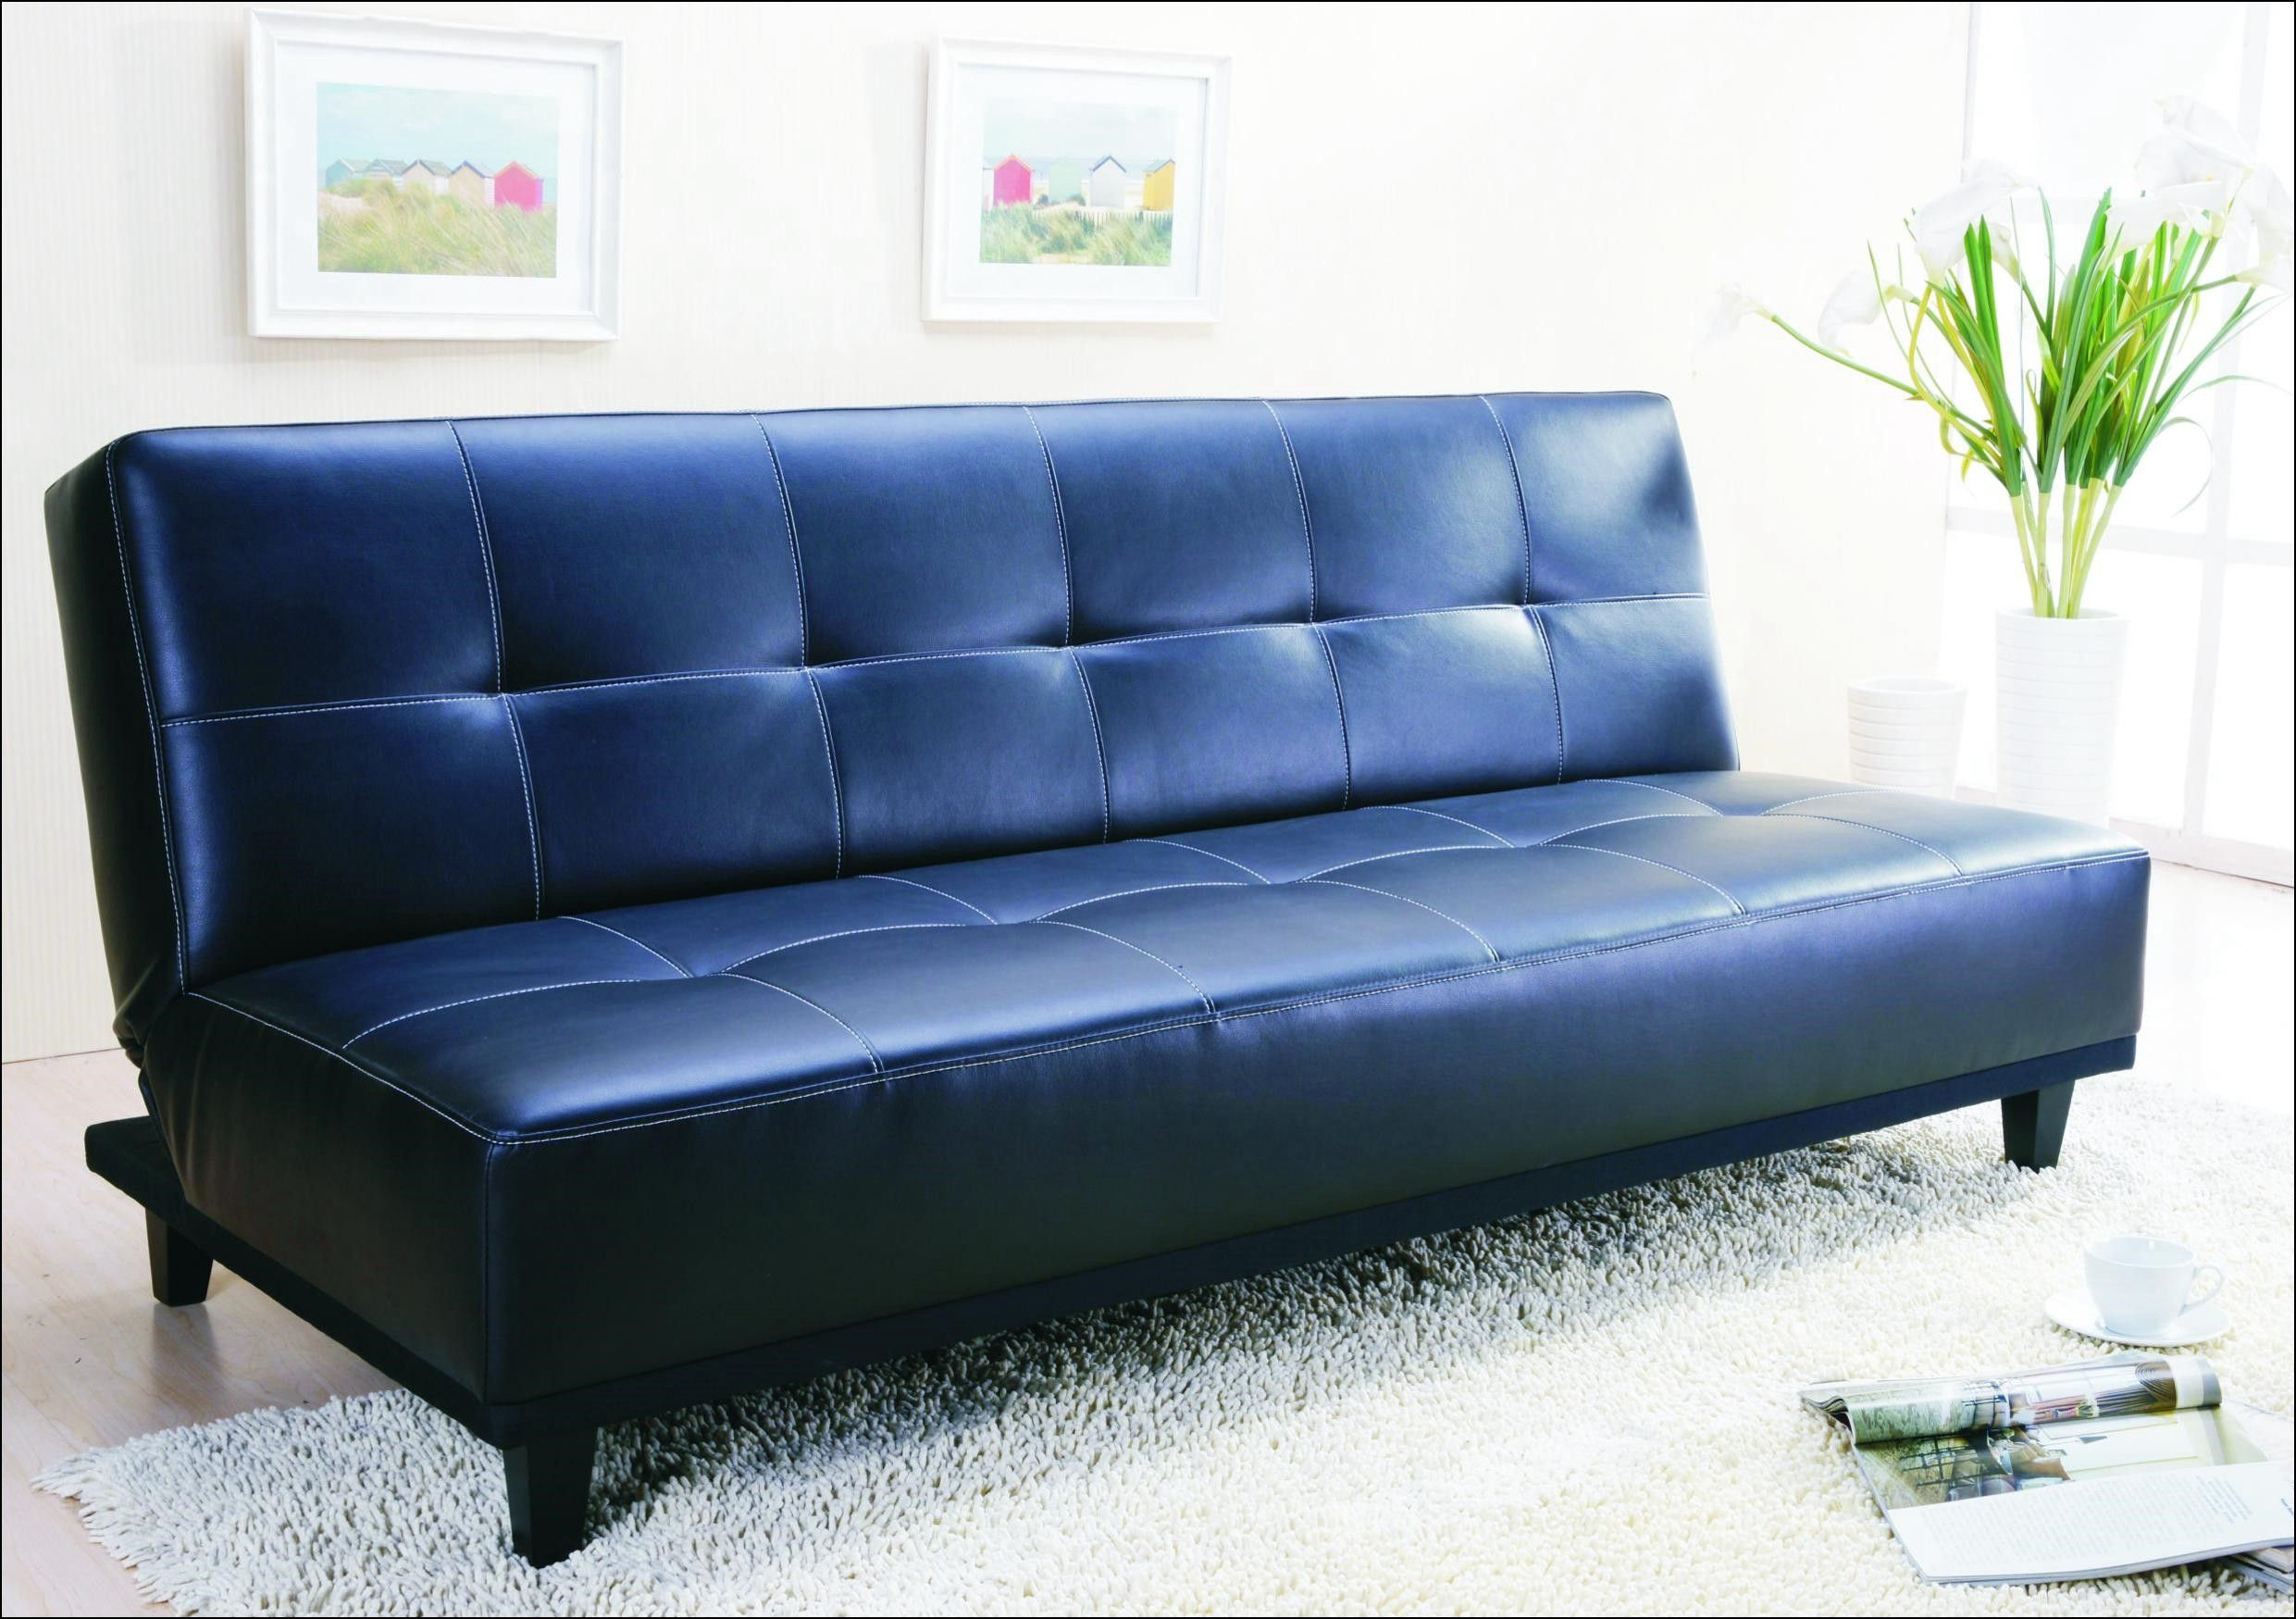 Blue Leather Couch for Sale | Couch & Sofa Gallery | Pinterest